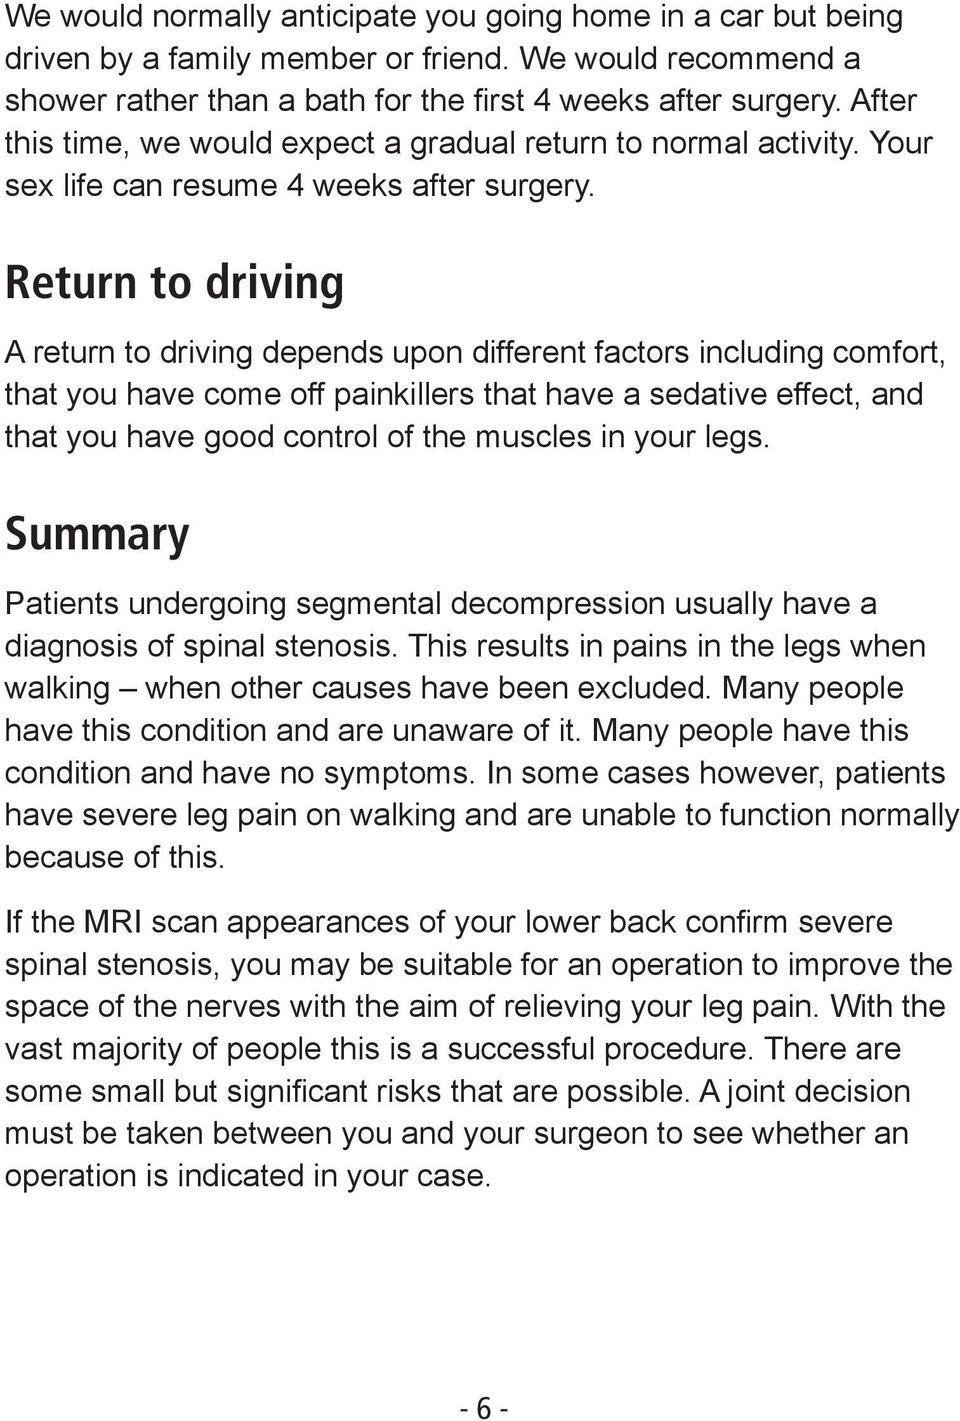 Return to driving A return to driving depends upon different factors including comfort, that you have come off painkillers that have a sedative effect, and that you have good control of the muscles